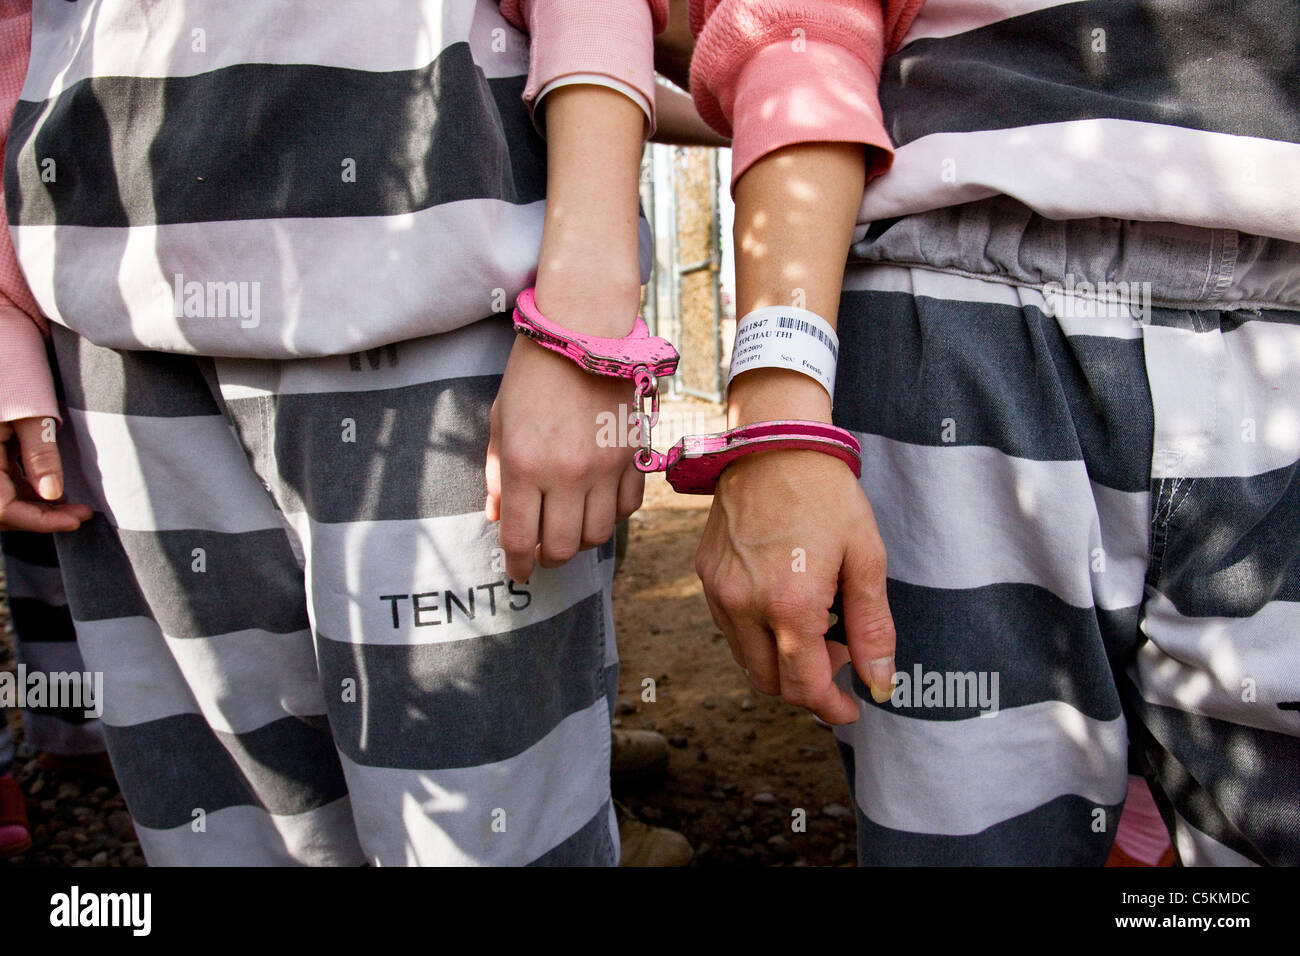 Two female inmates are handcuffed together with pink handcuffs at Estrella Jail in Phoenix Arizona & Two female inmates are handcuffed together with pink handcuffs at ...